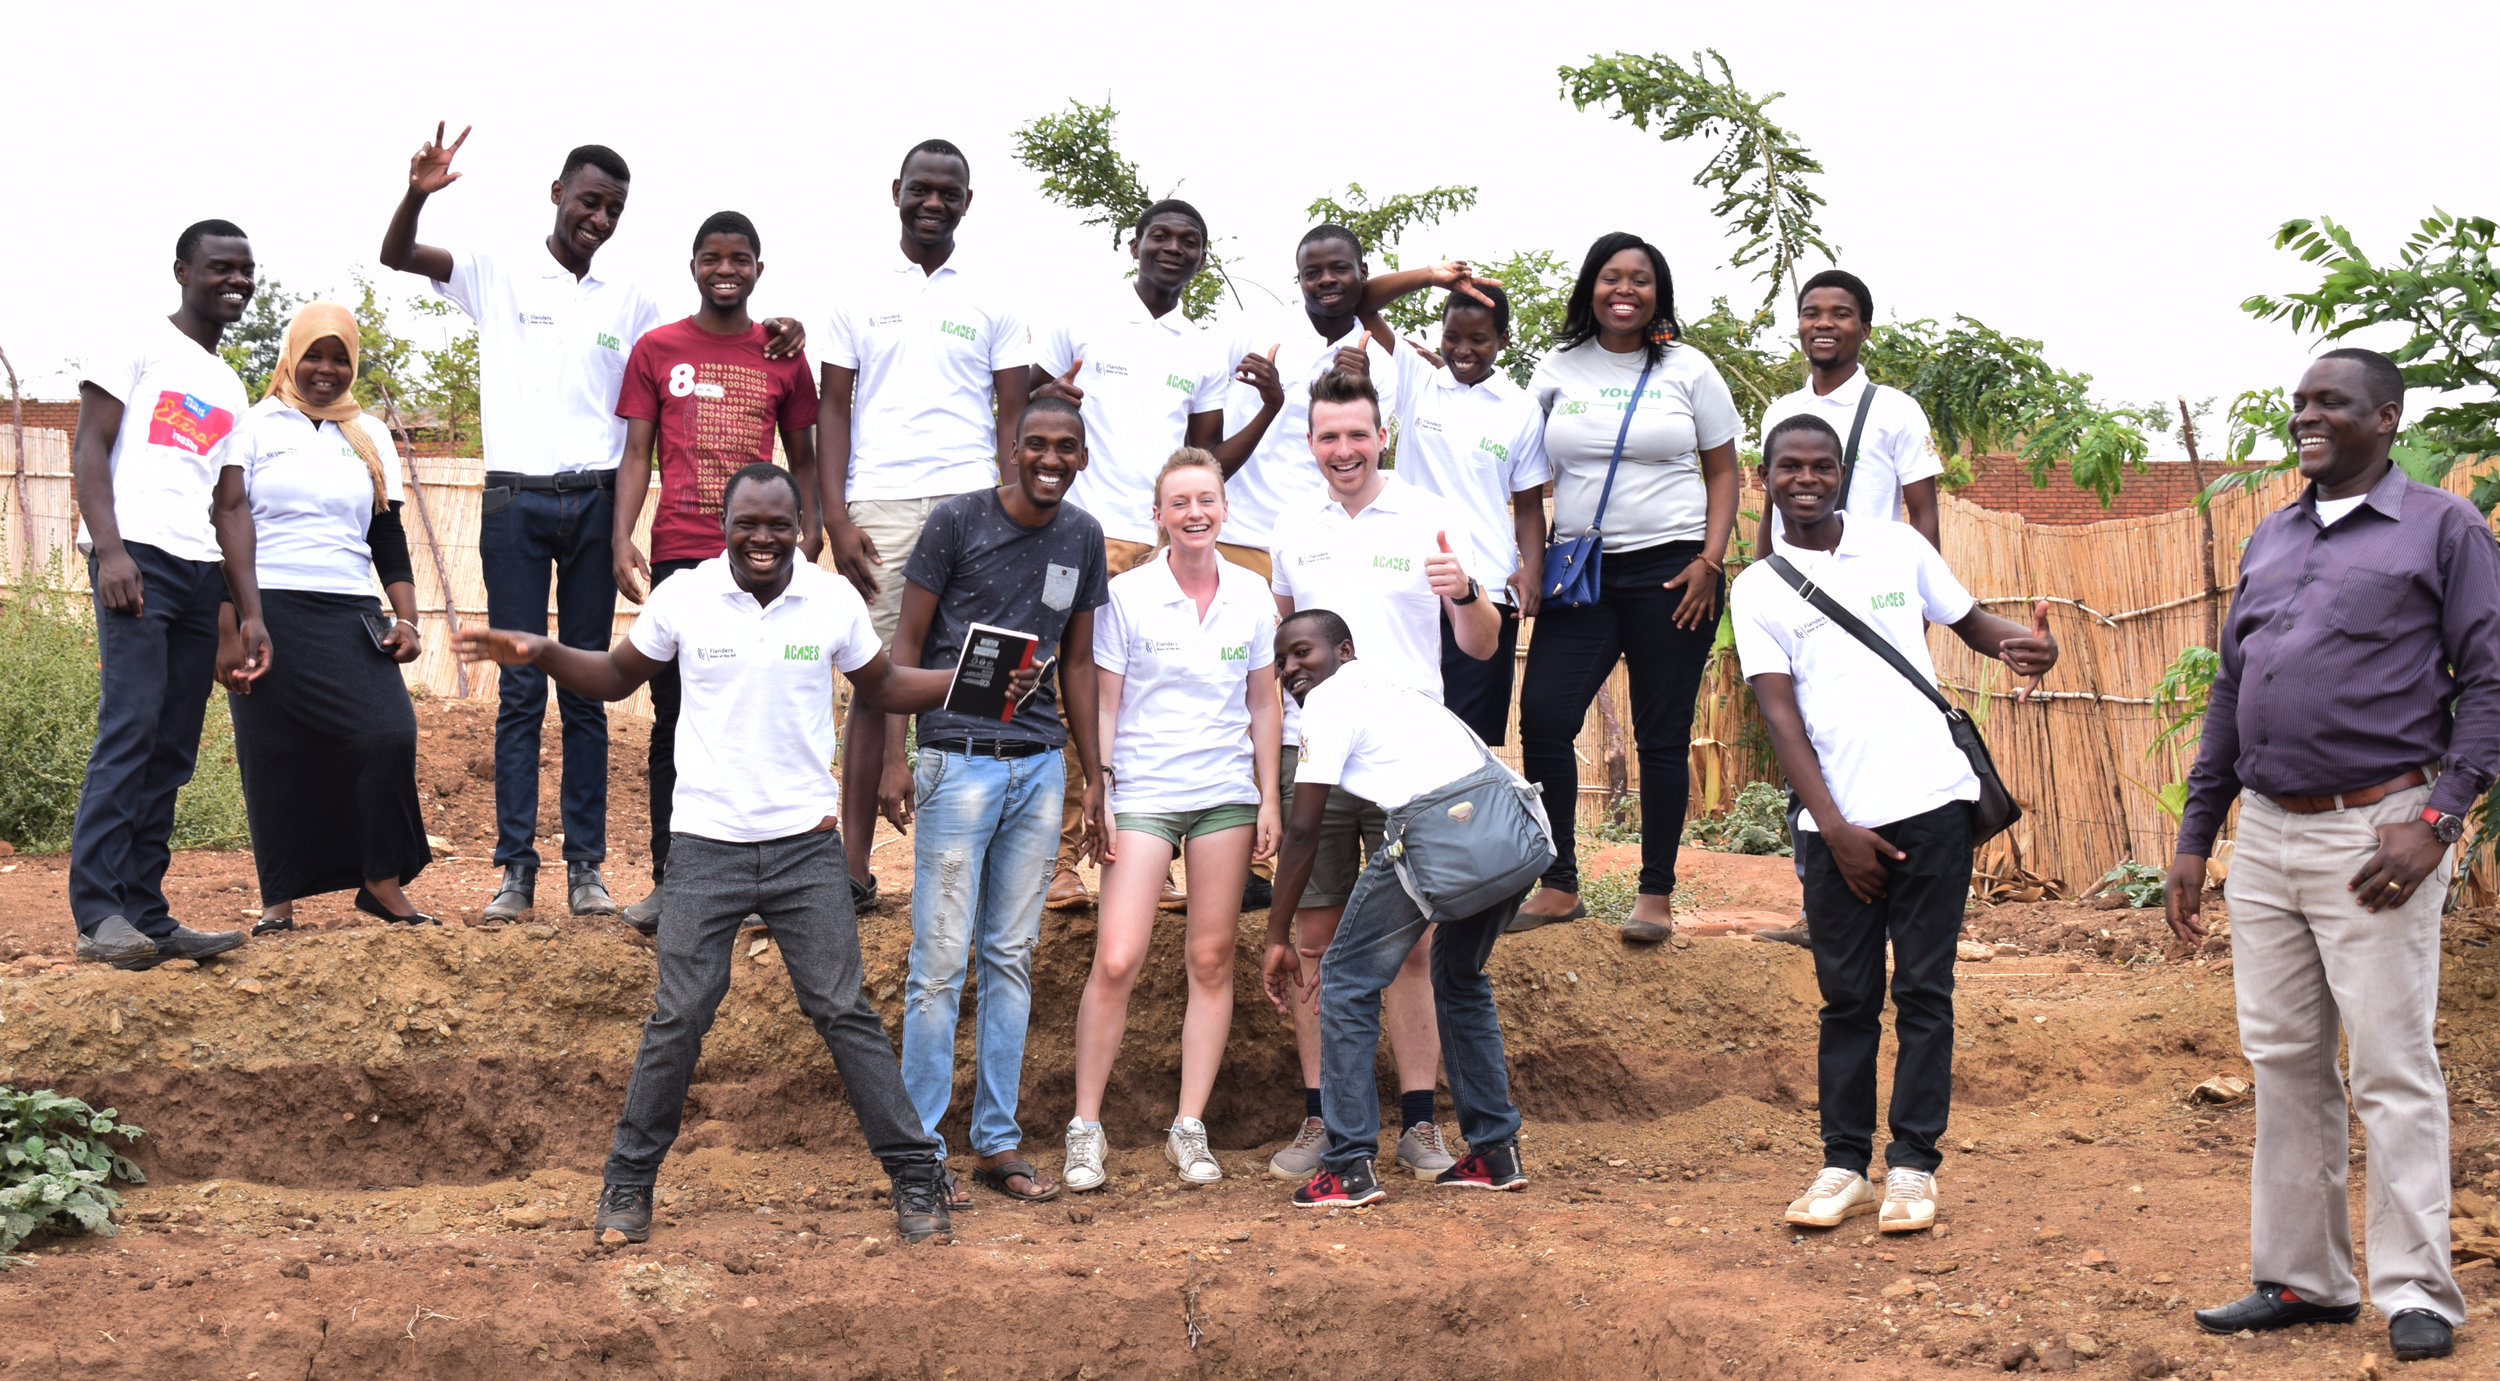 Our Team - Apart from being a network of passionate and dedicated youth agri-entrepreneurs, ACADES is being managed by a team of passionate, qualified and competent professionals with skills in agriculture, business management, financial management, project management among others.